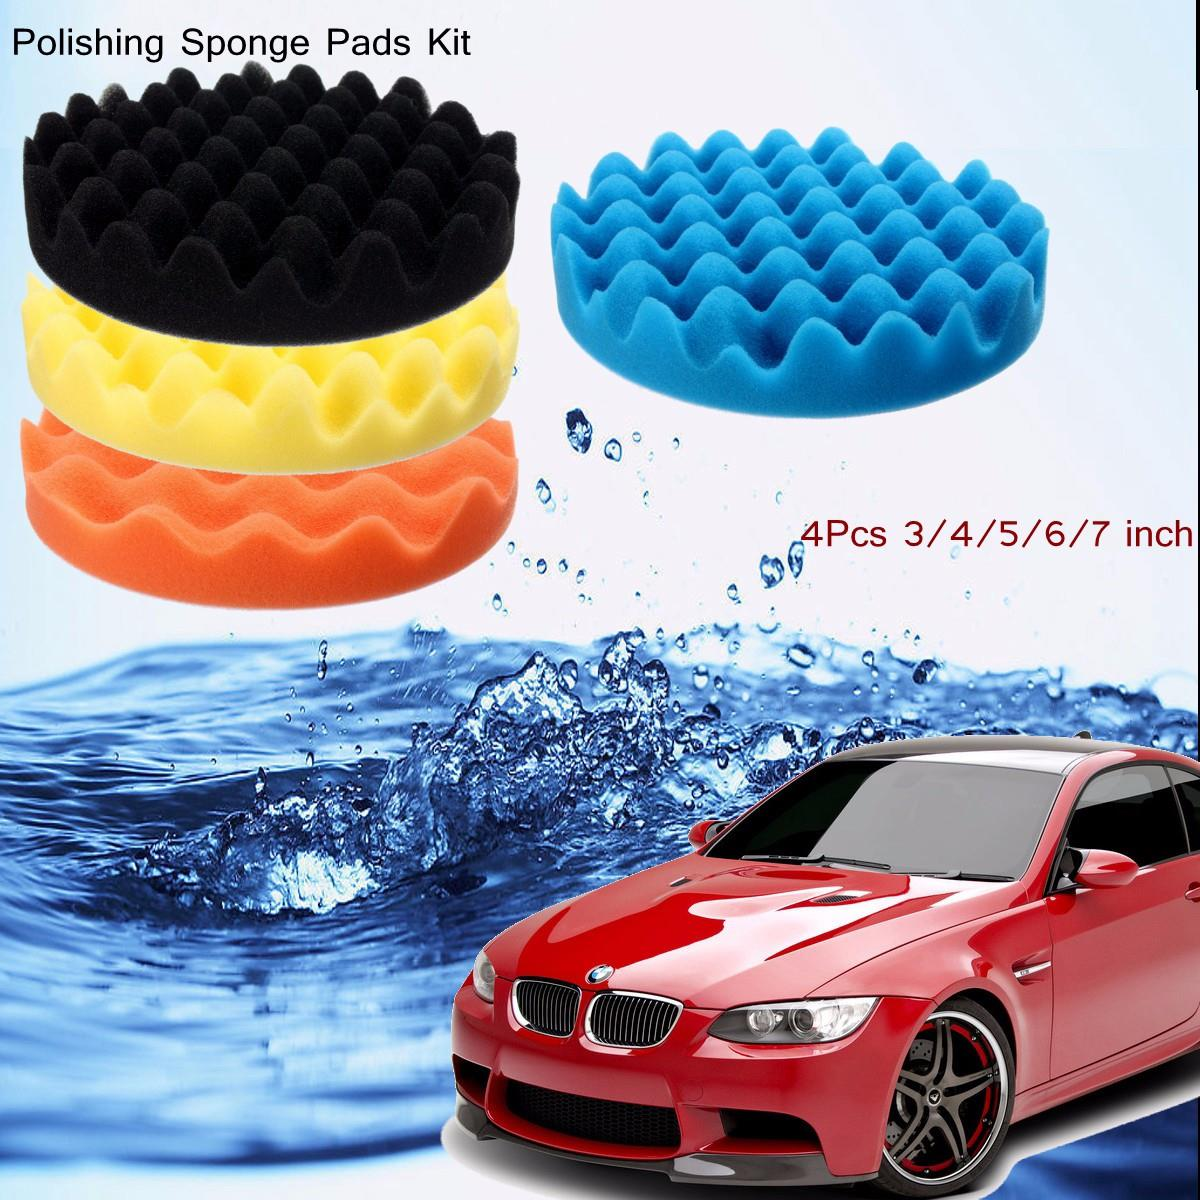 4Pcs 3 / 4 / 5 / 6 / 7 Inch Buffing Polishing Sponge Pads